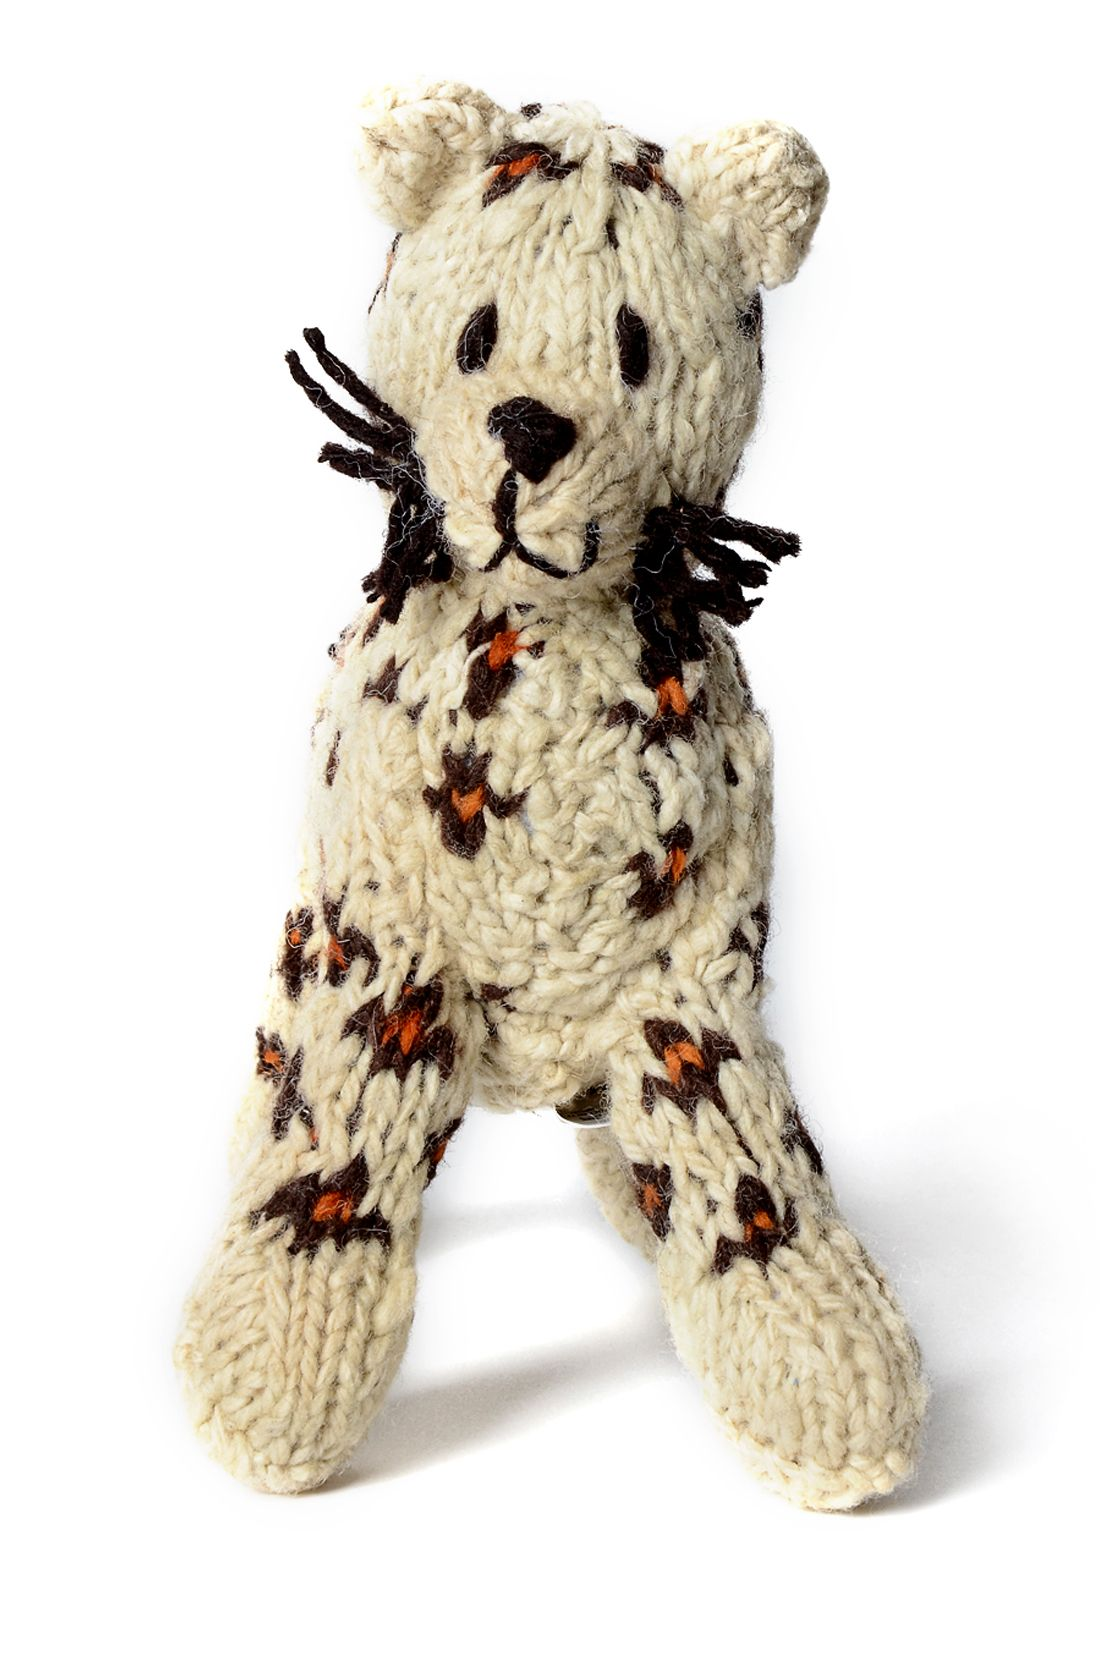 Home spun and hand knitted stuffed animals made by a women s collective in  Kenya. Each piece is signed by the artist who made it. All natural plant  dyes.4 ... 2401ade89a